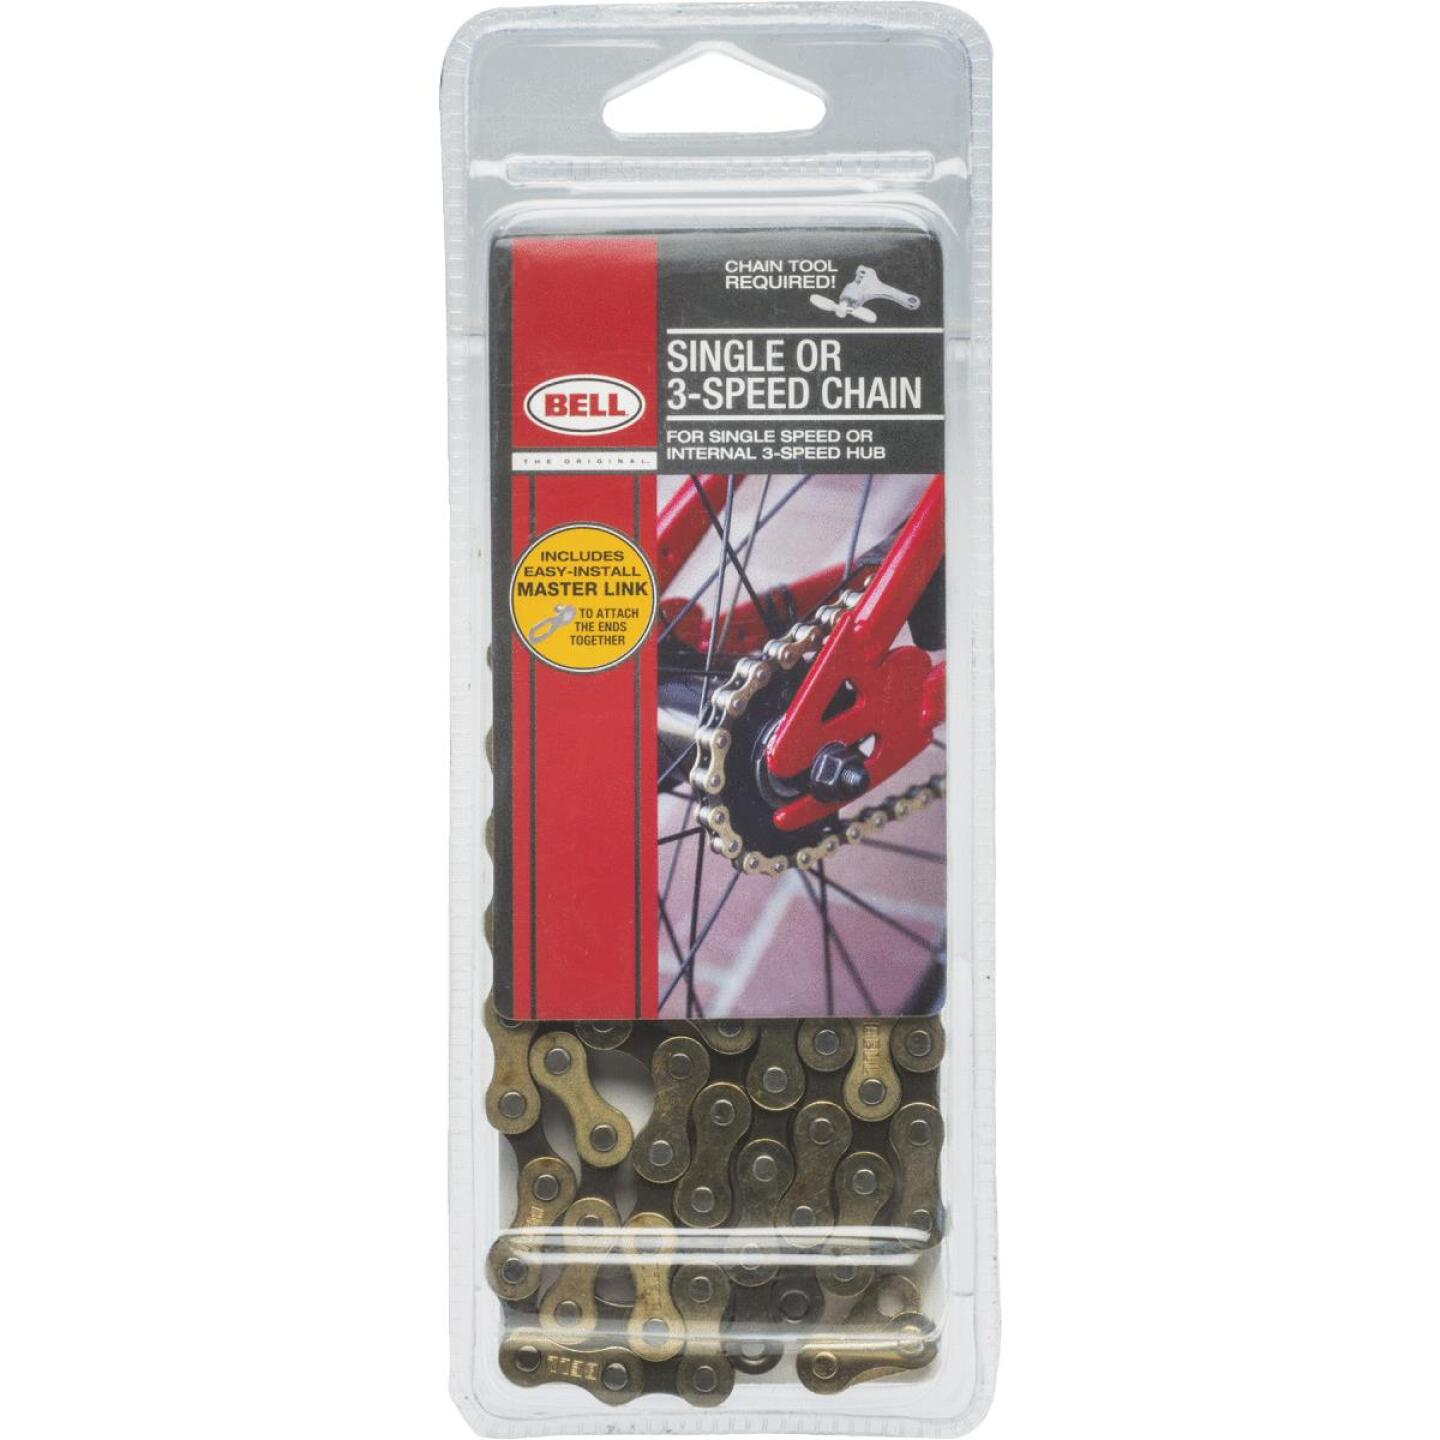 Bell Sports Single & 3-Speed Bicycle Chain Image 1